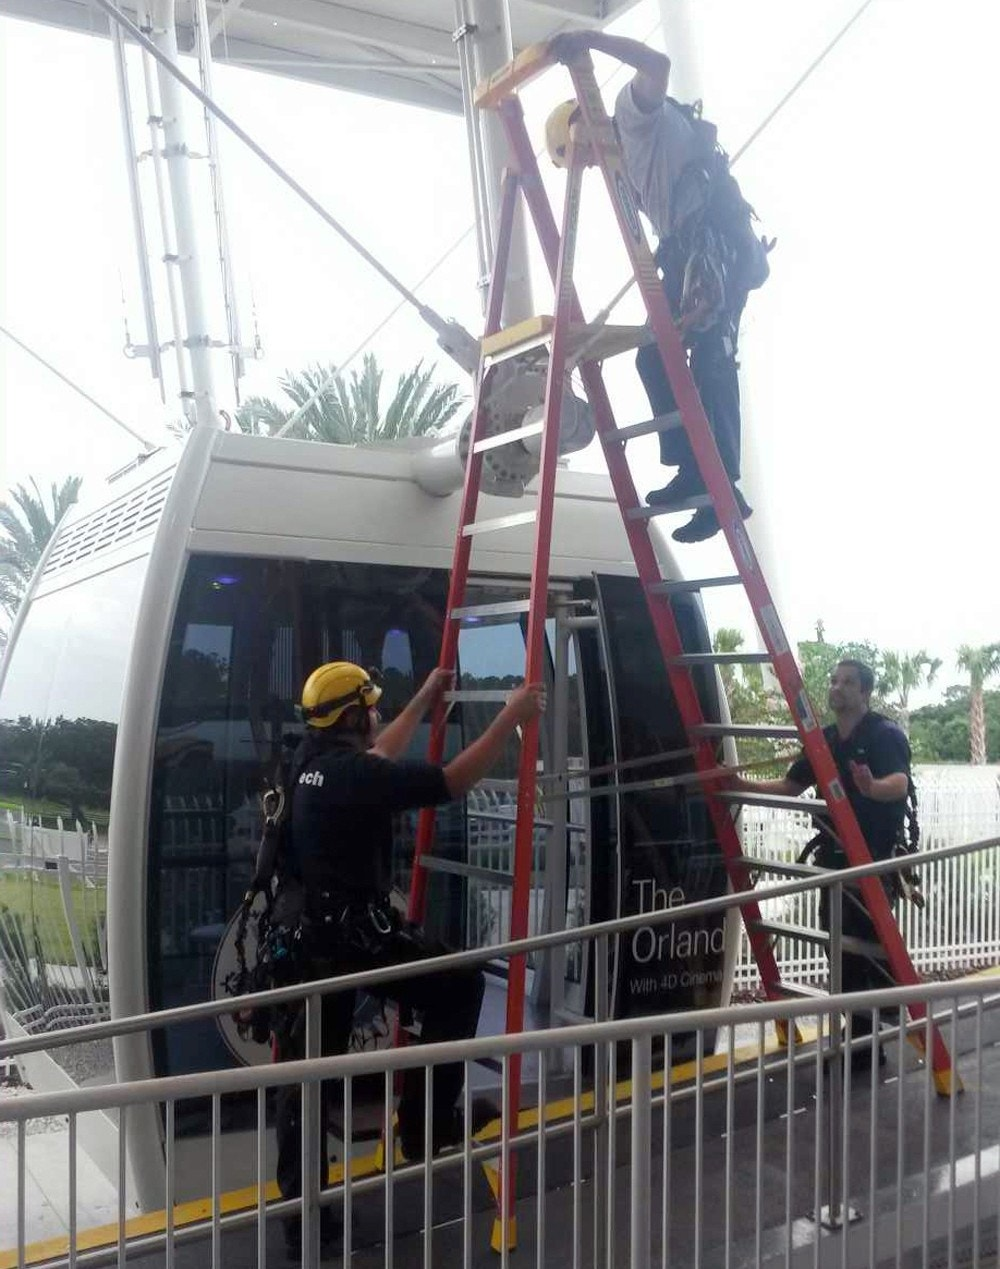 Authorities say all 66 riders safely evacuated after 400-foot Ferris wheel in Florida stops